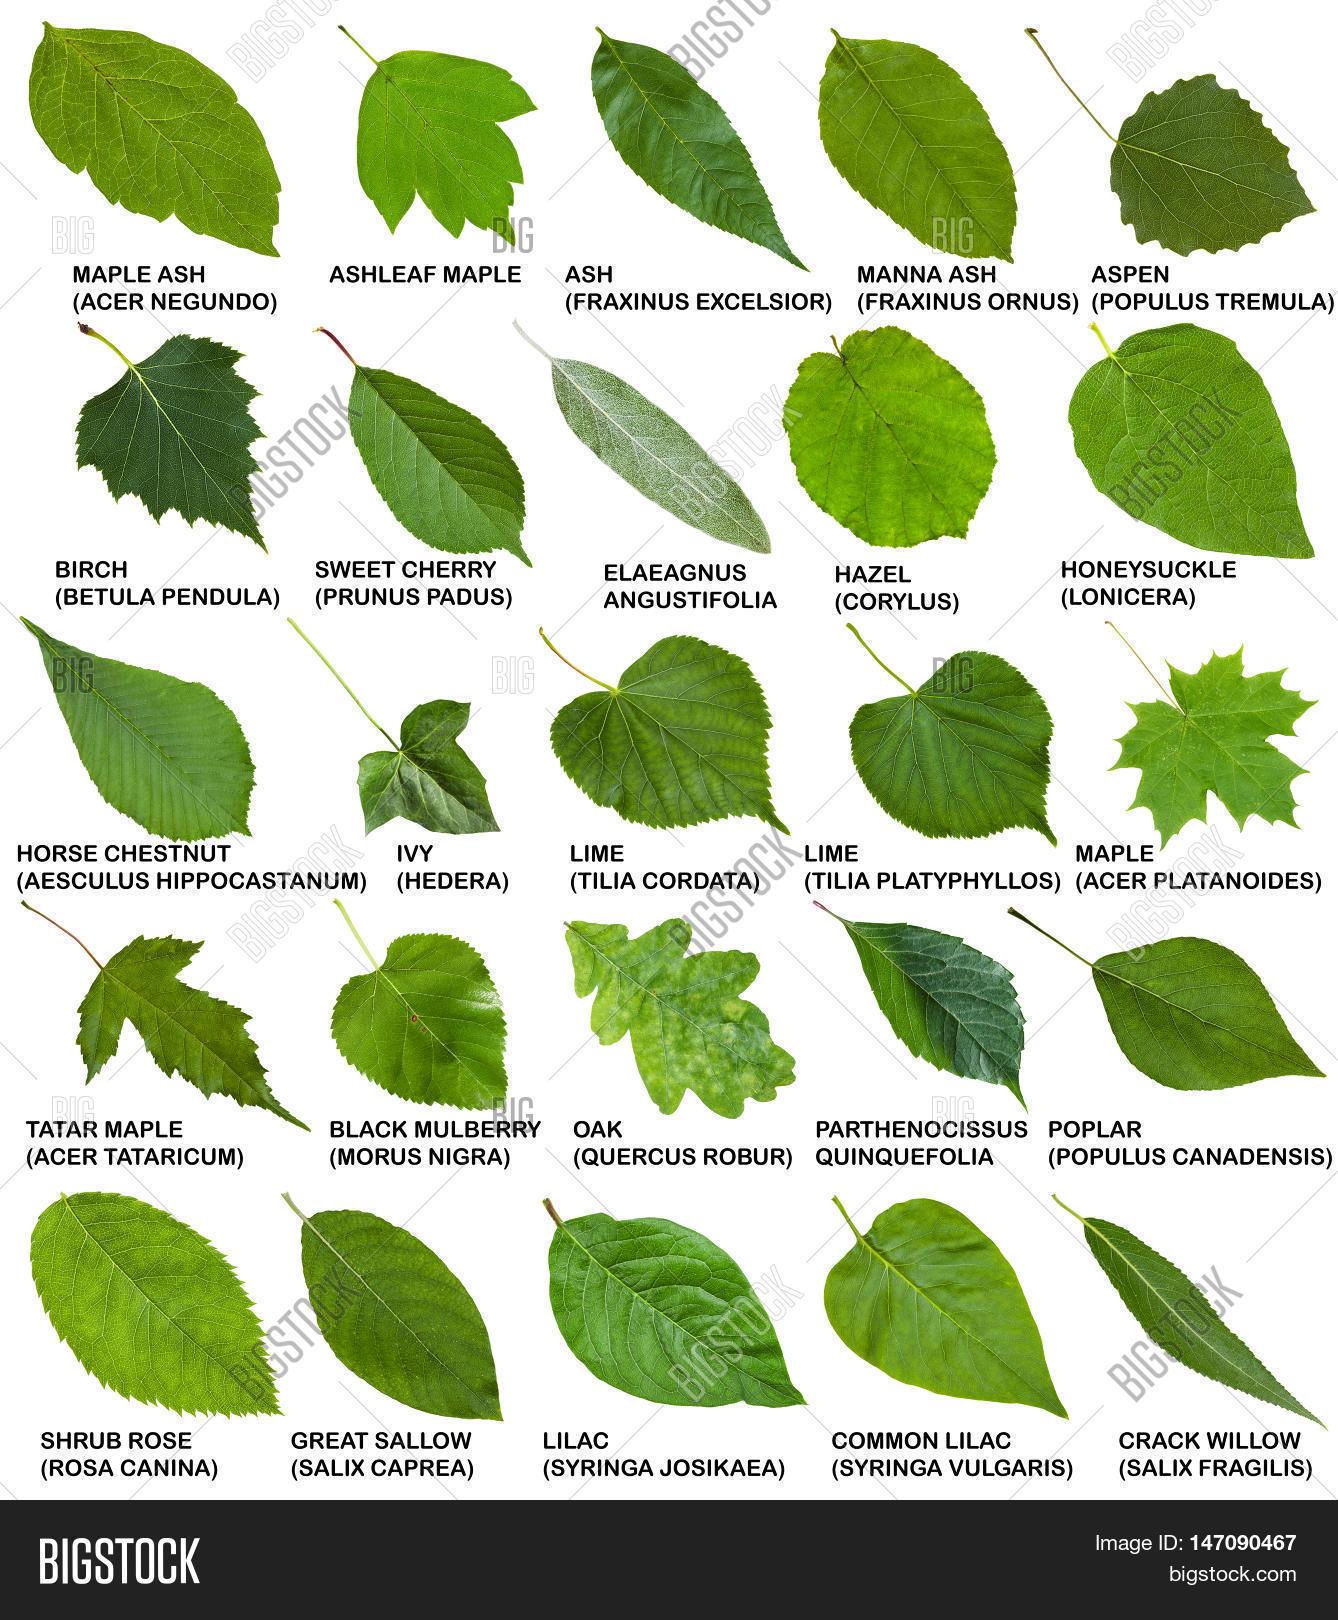 Green leaves trees shrubs names image photo bigstock green leaves of trees and shrubs with names sciox Images